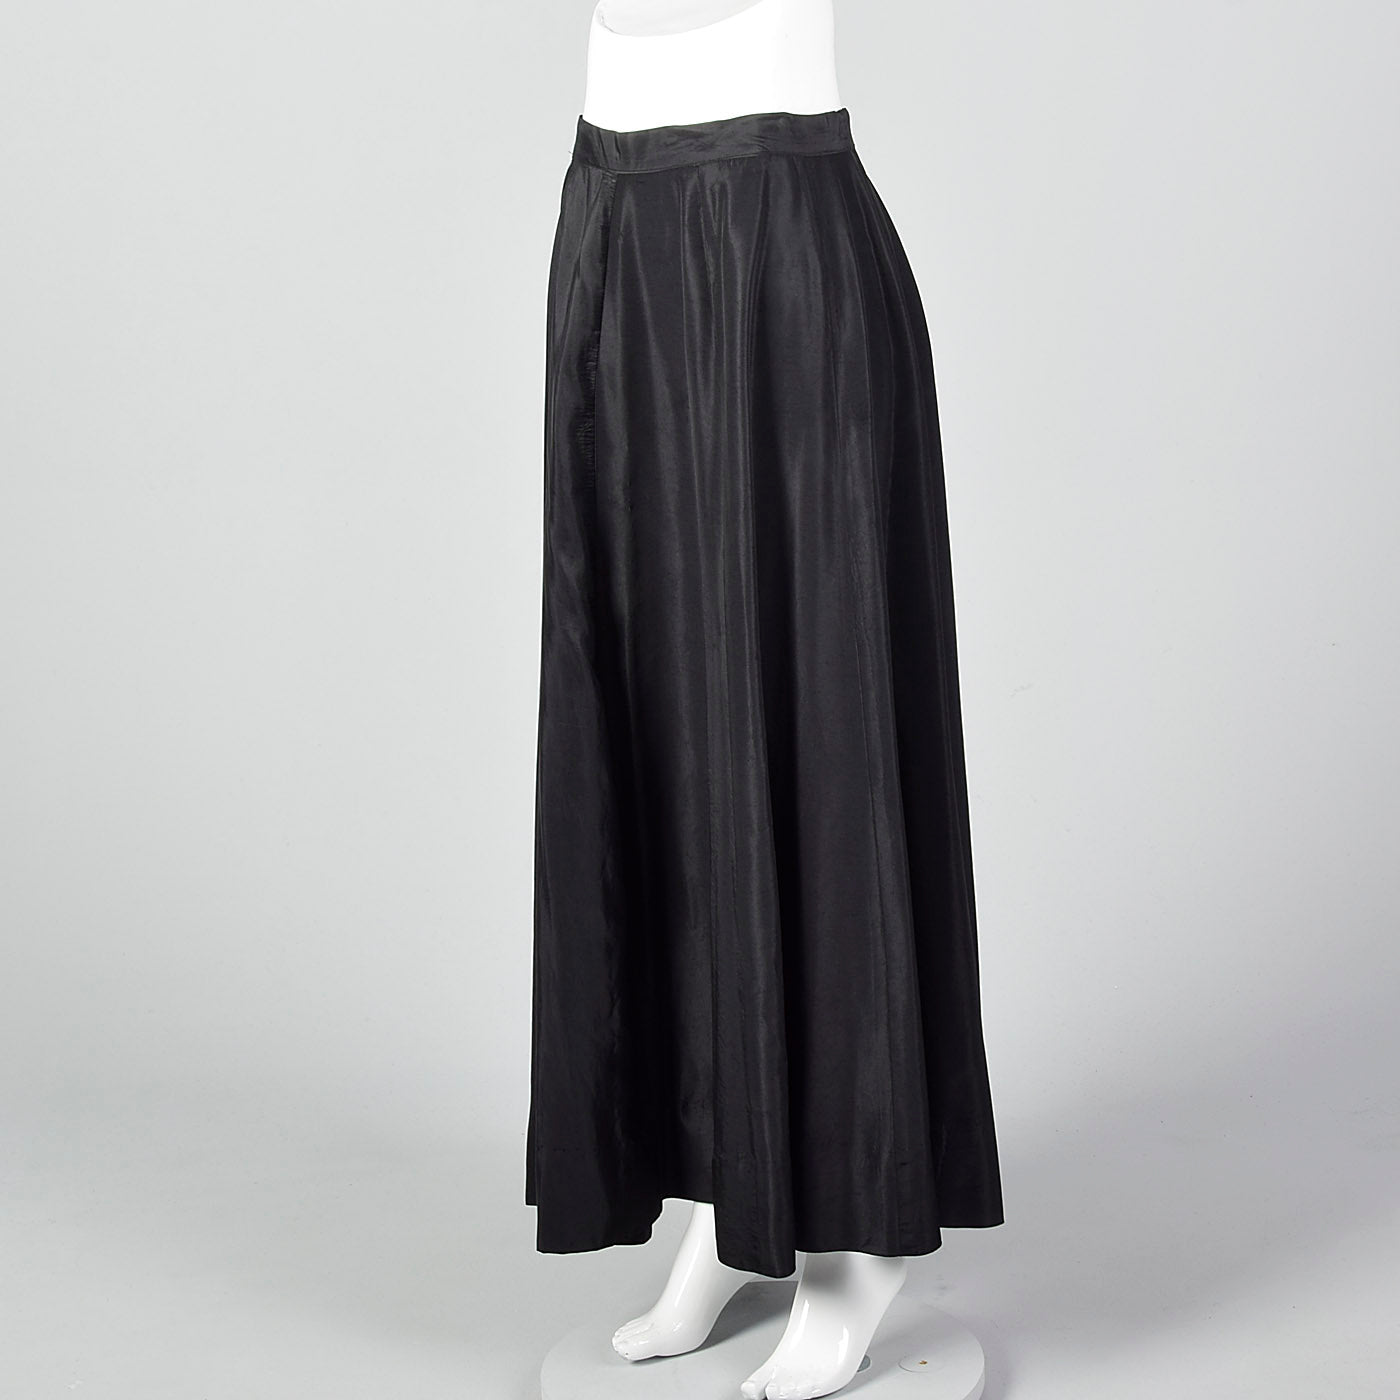 1950s Black Taffeta Maxi Skirt